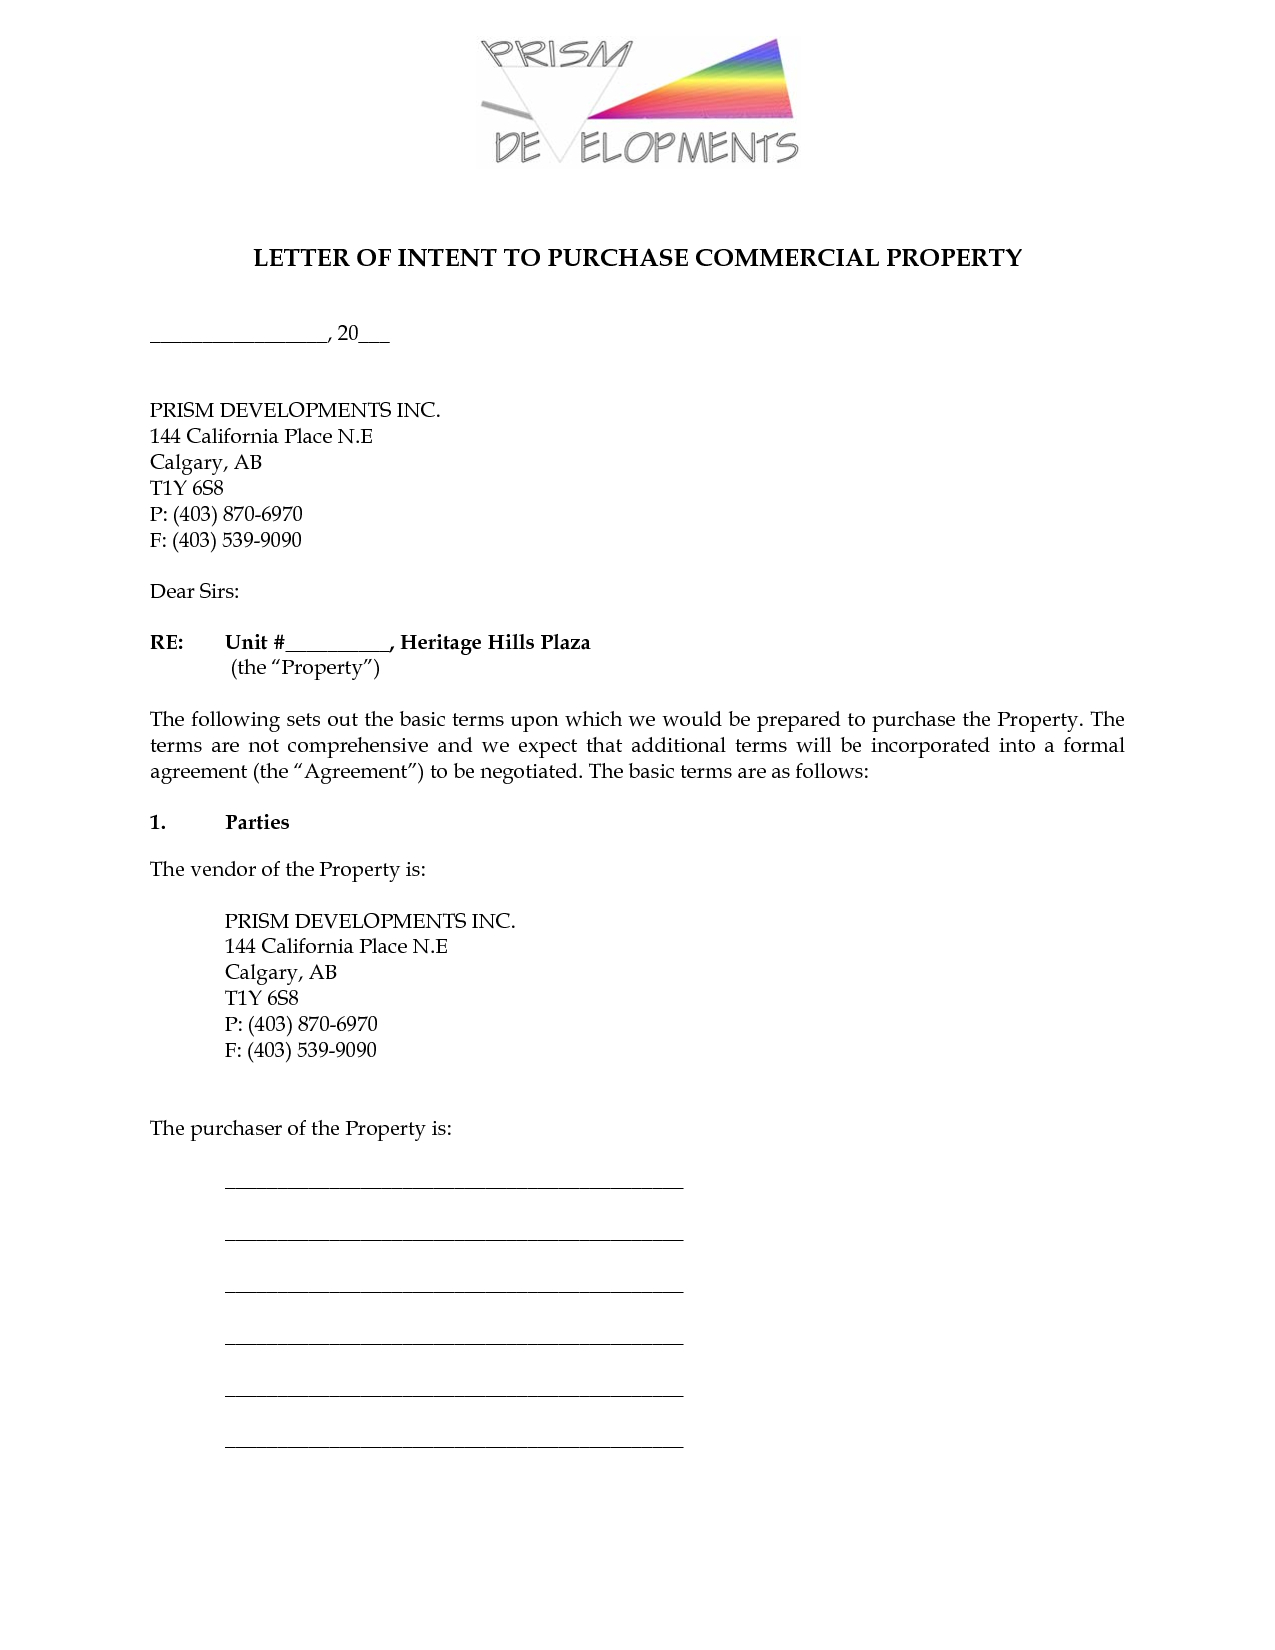 Letter Of Intent to Sell House Template - Simple Letter Intent to Purchaserty High Real Estate Free